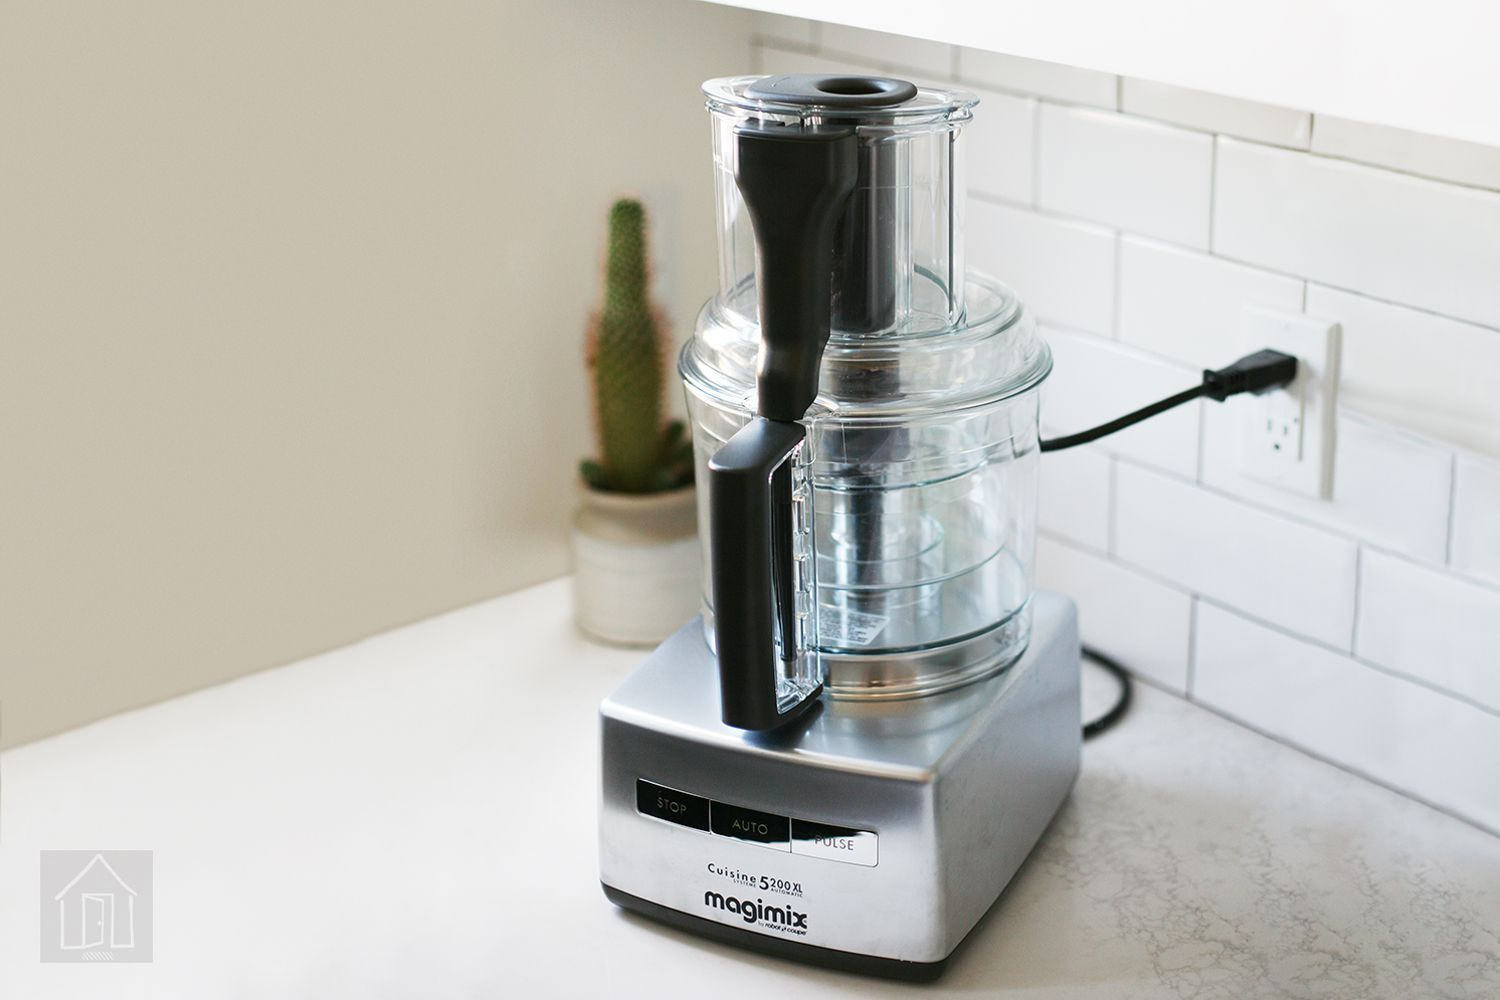 Magimix Xl Food Processor Review This Appliance Does It All